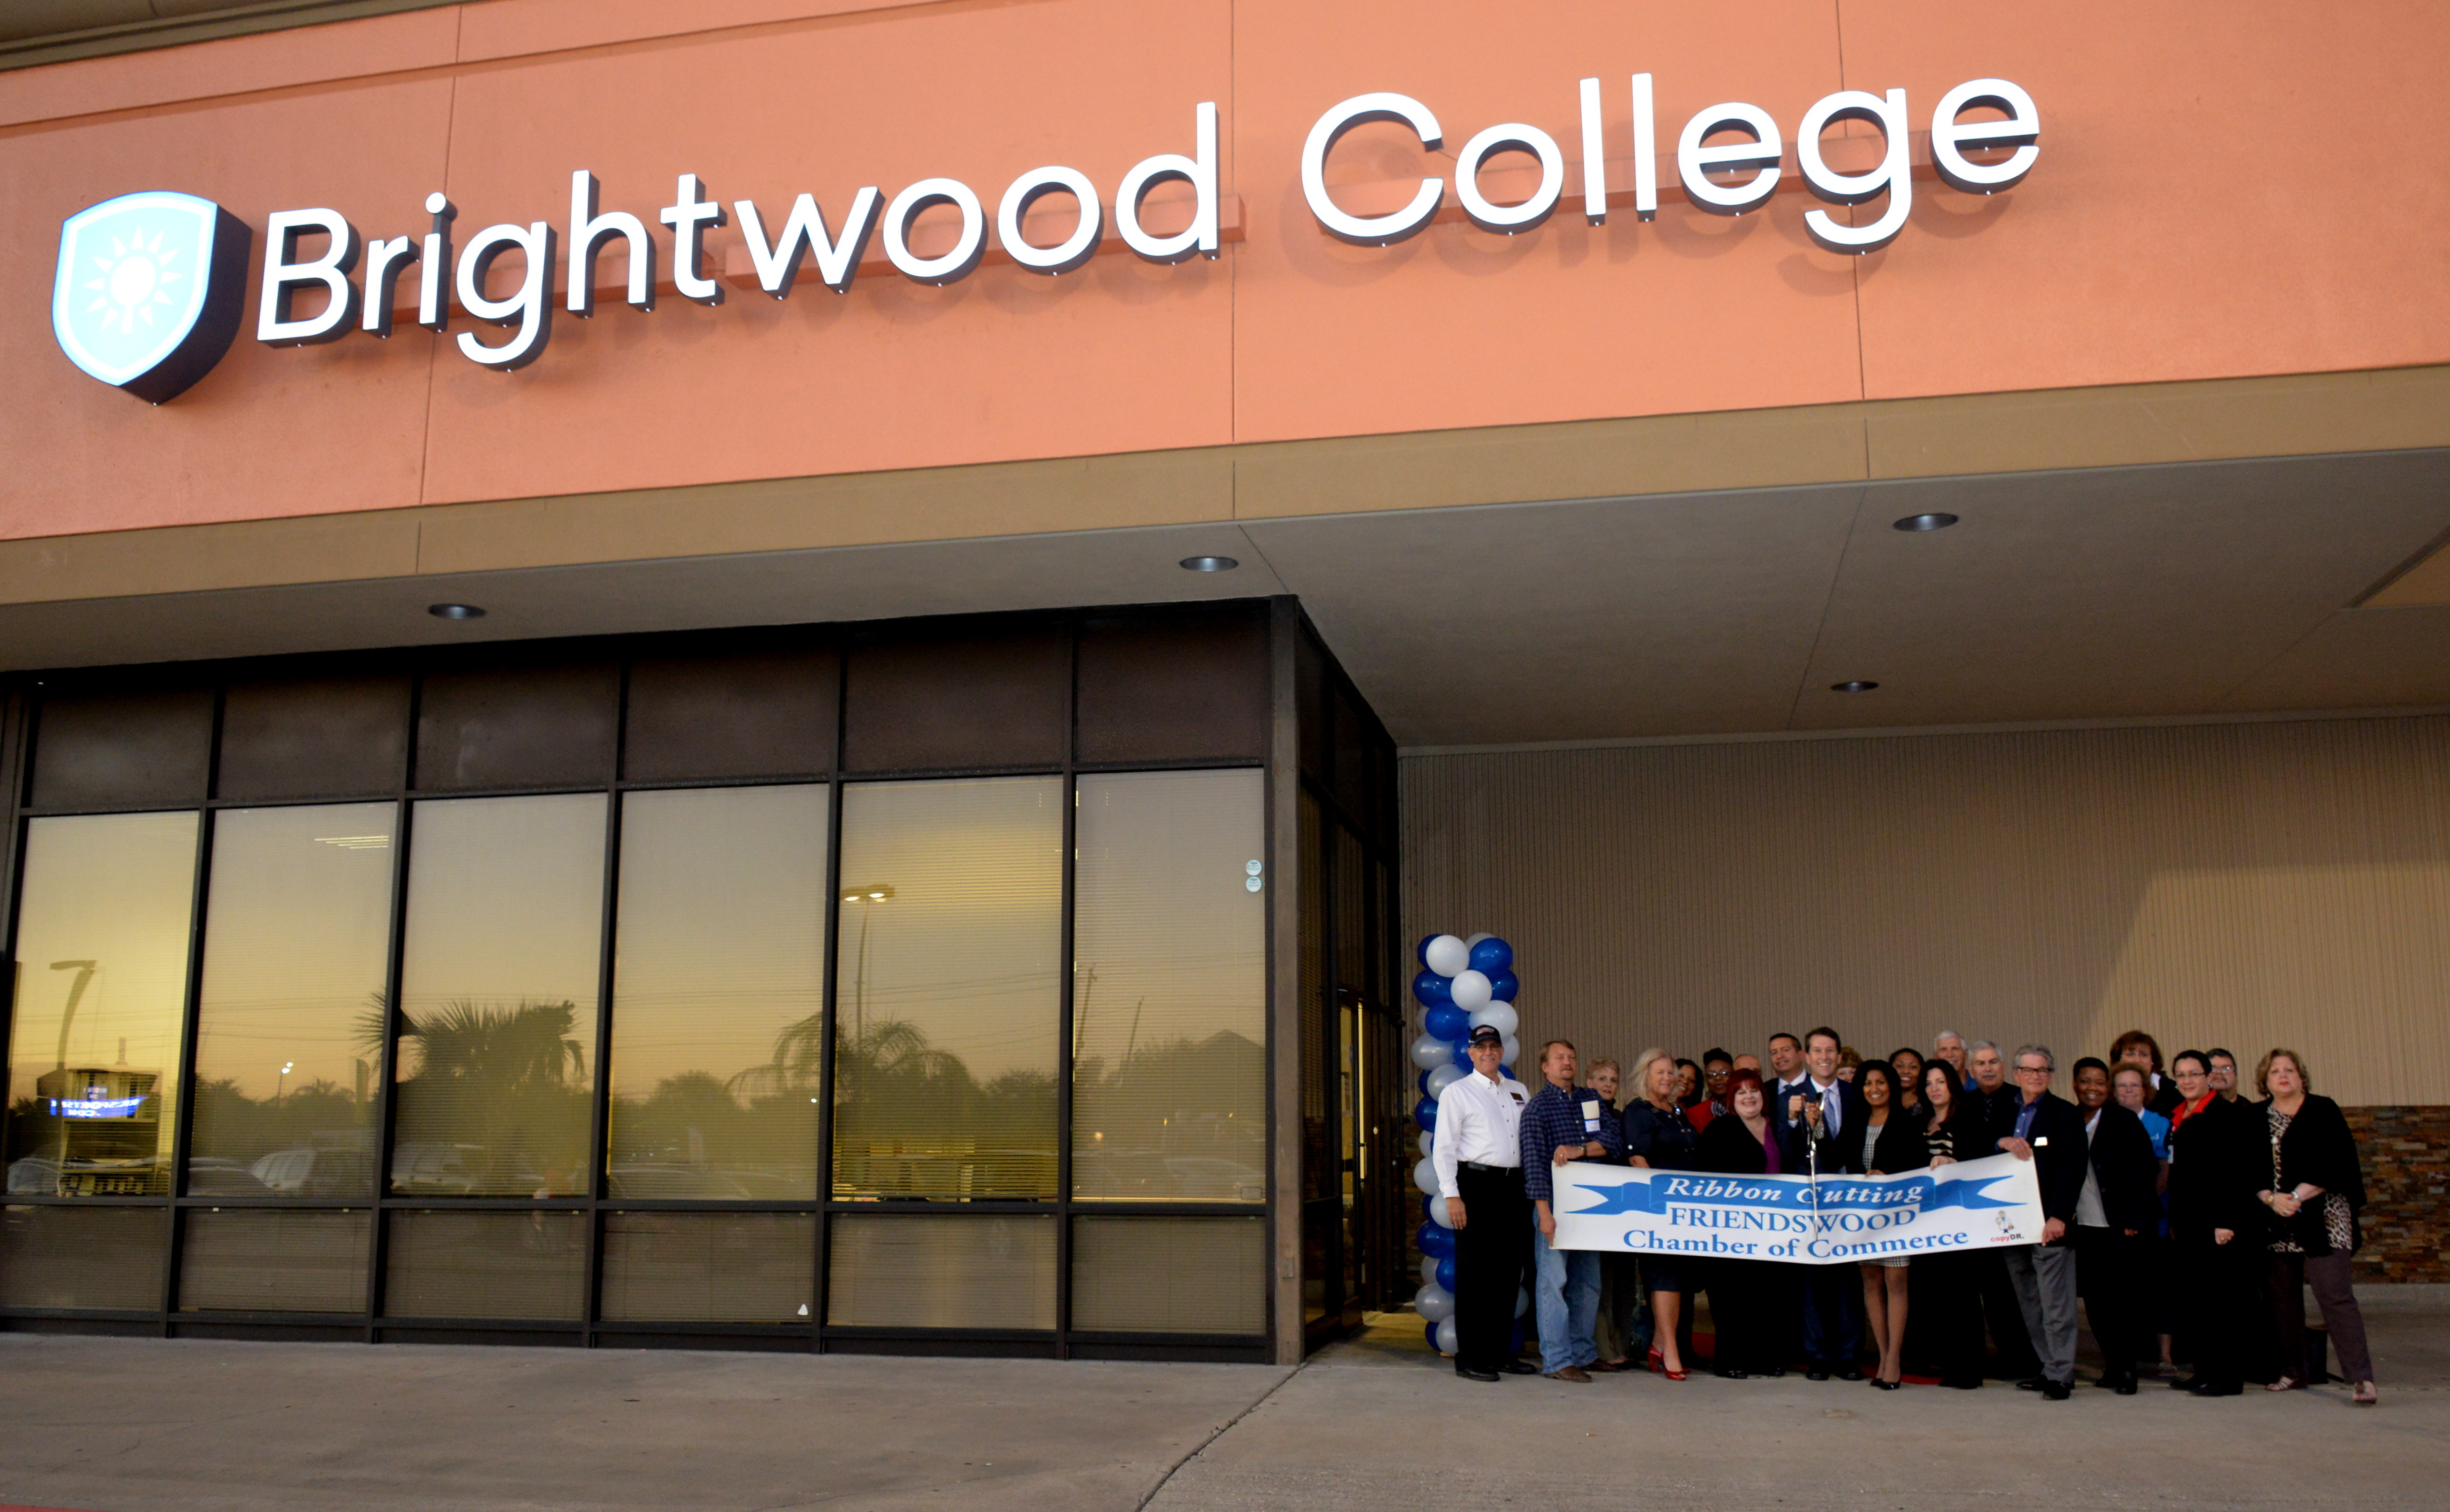 Brightwood College in Friendswood image 1